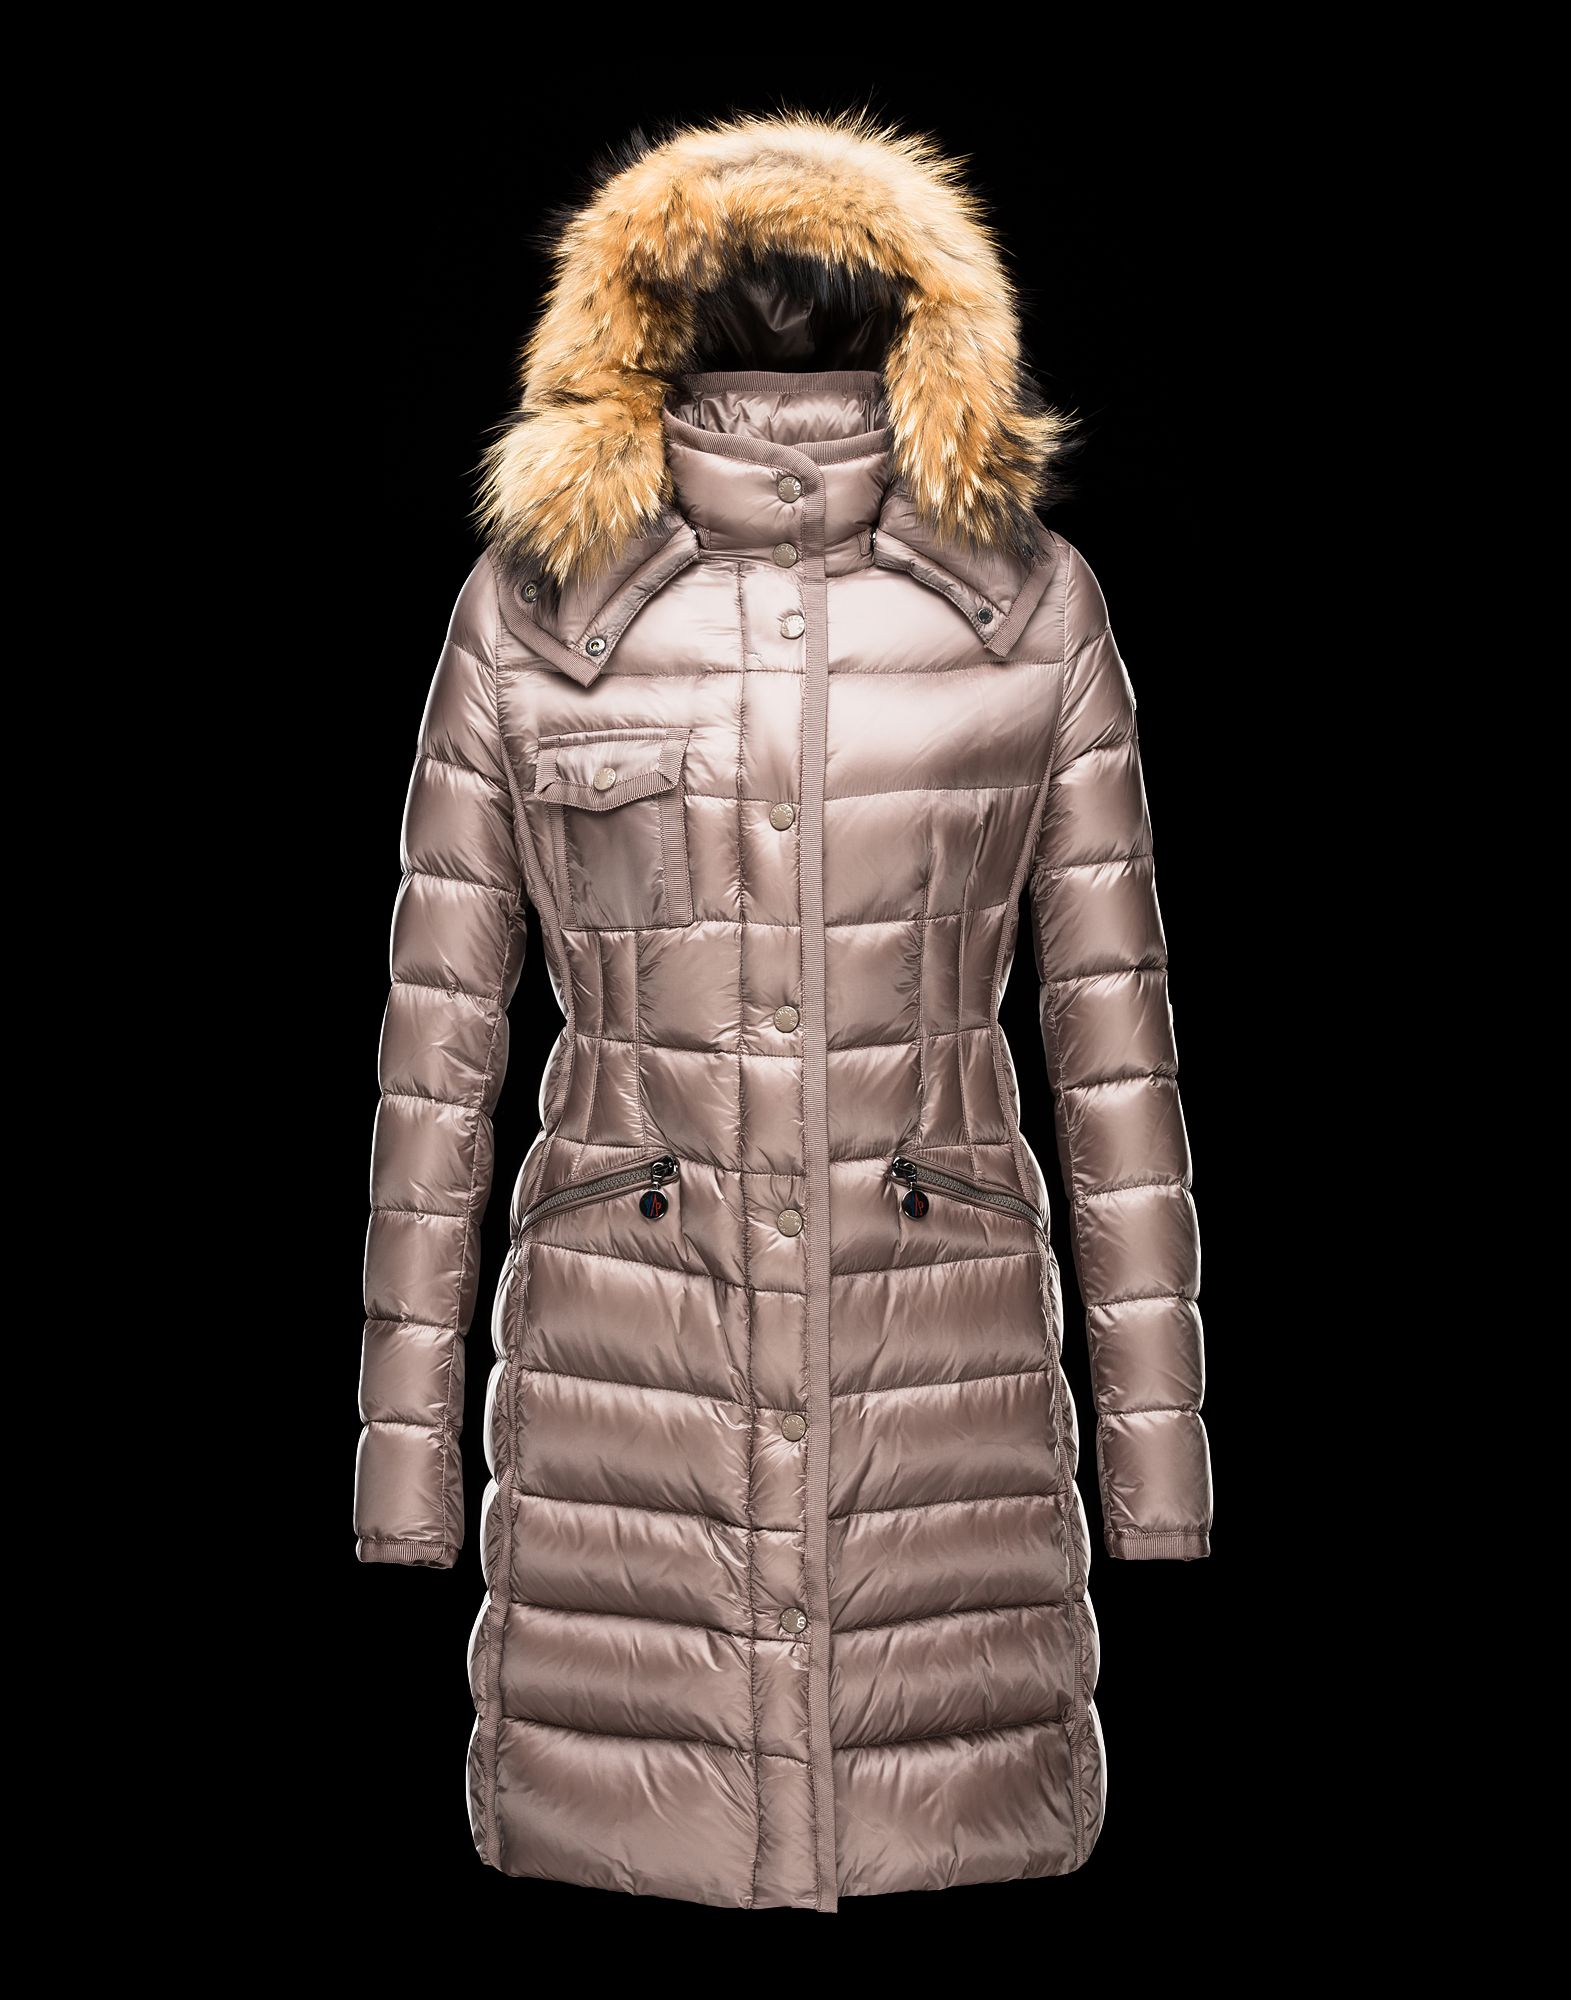 Cheap Moncler Women Coats Long Dove Grey With Fur Collar Removable Cap Sale NA1095